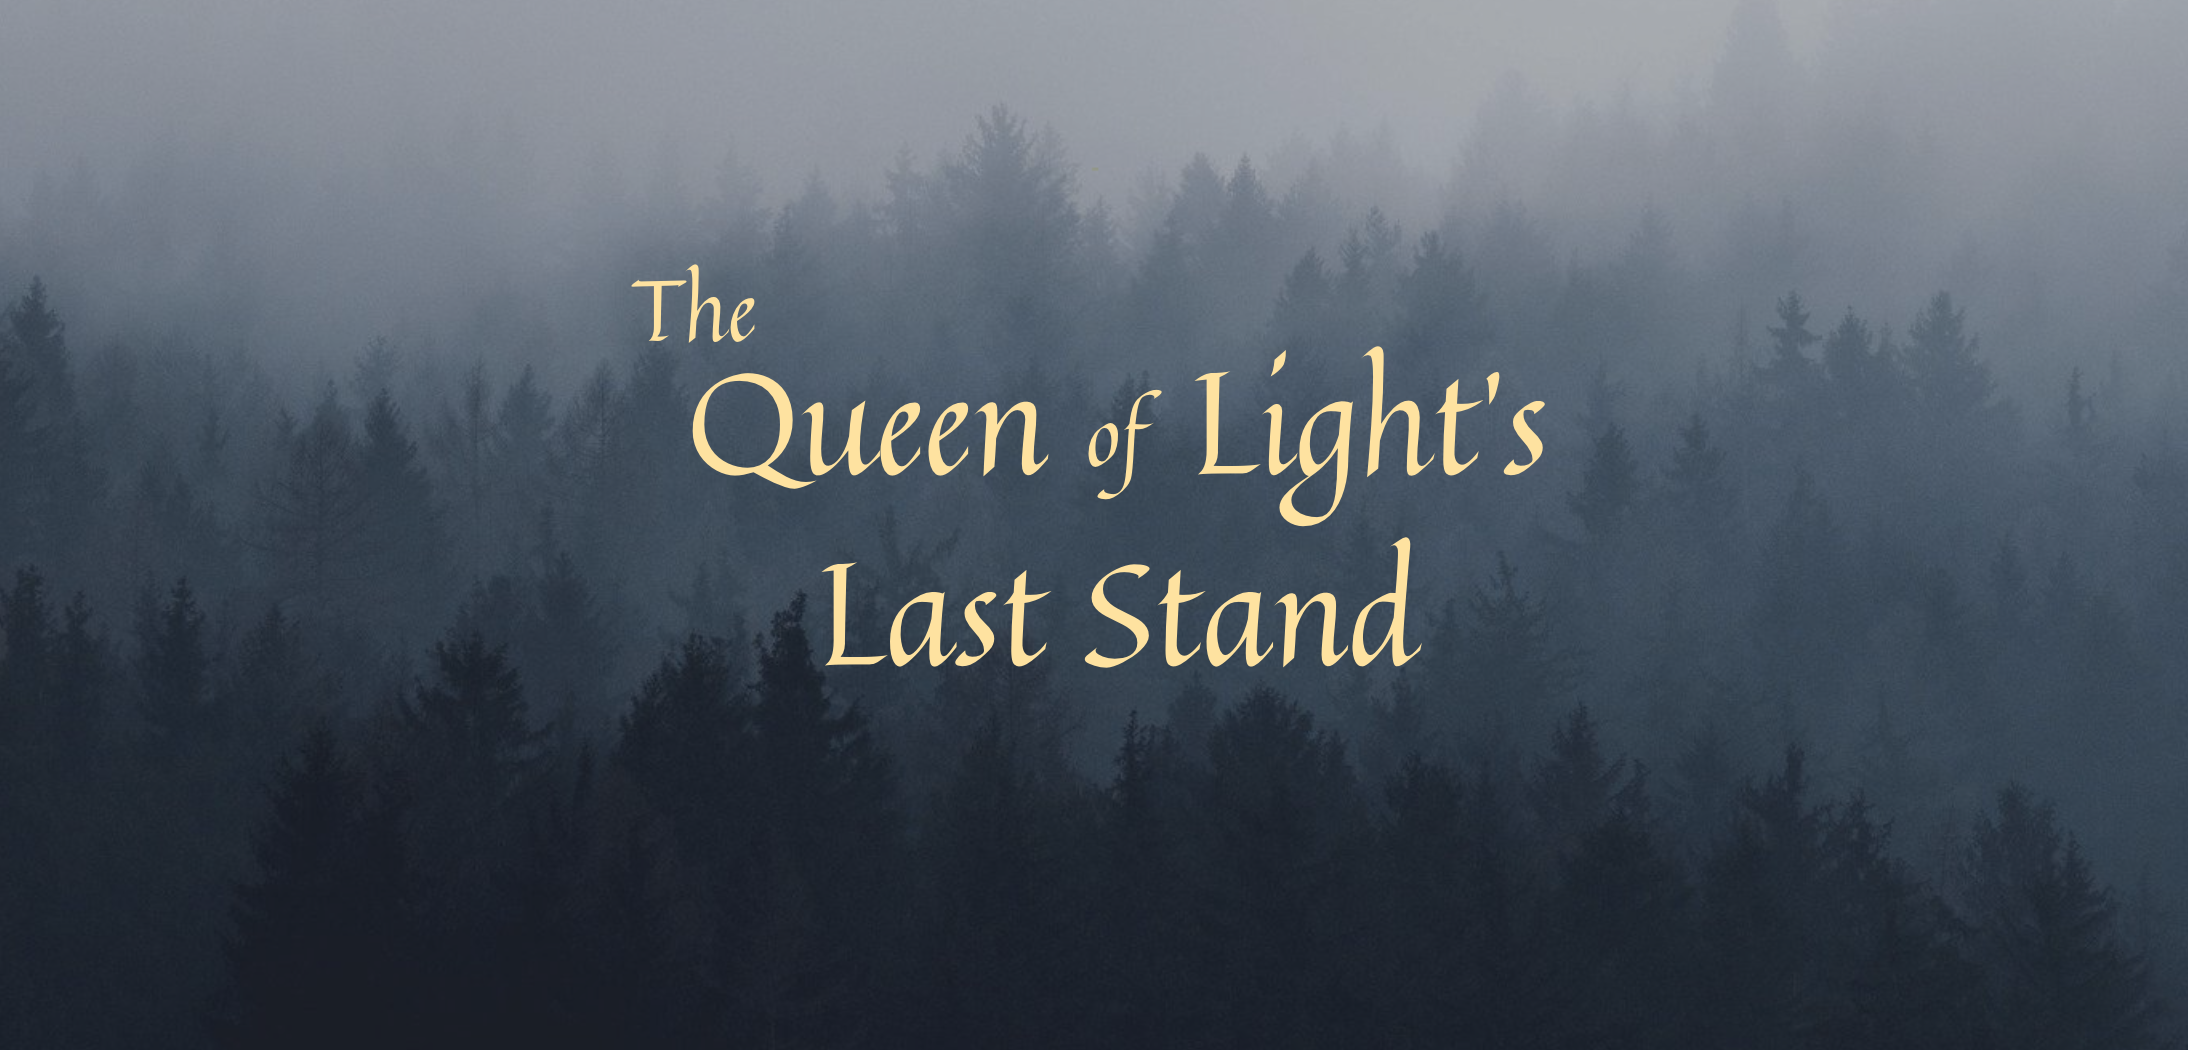 The Queen of Light's Last Stand